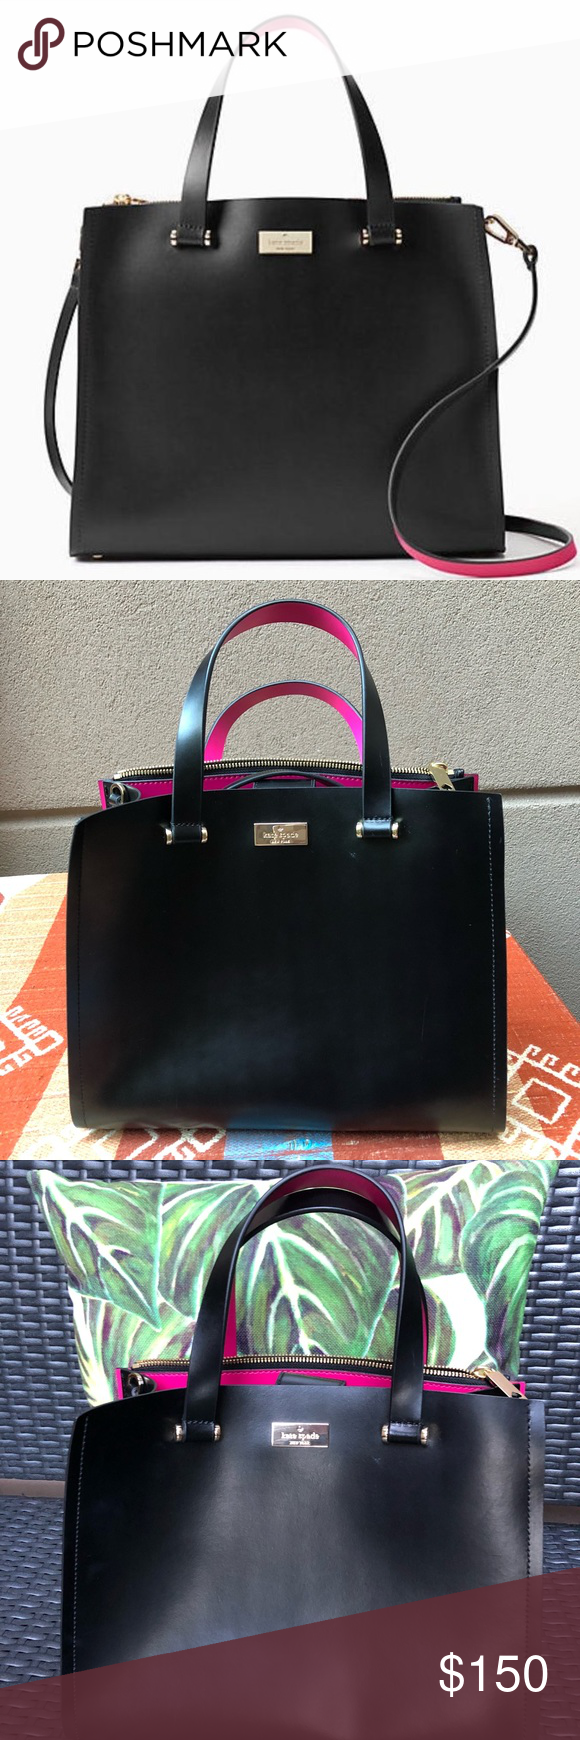 f6aa0f5b0f7e Kate Spade Arbour Hill Kyra Crossbody Black Brand new without tags. Black  w  sweetheart pink detail Gold hardware Adjustable removable strap  Measurements  ...